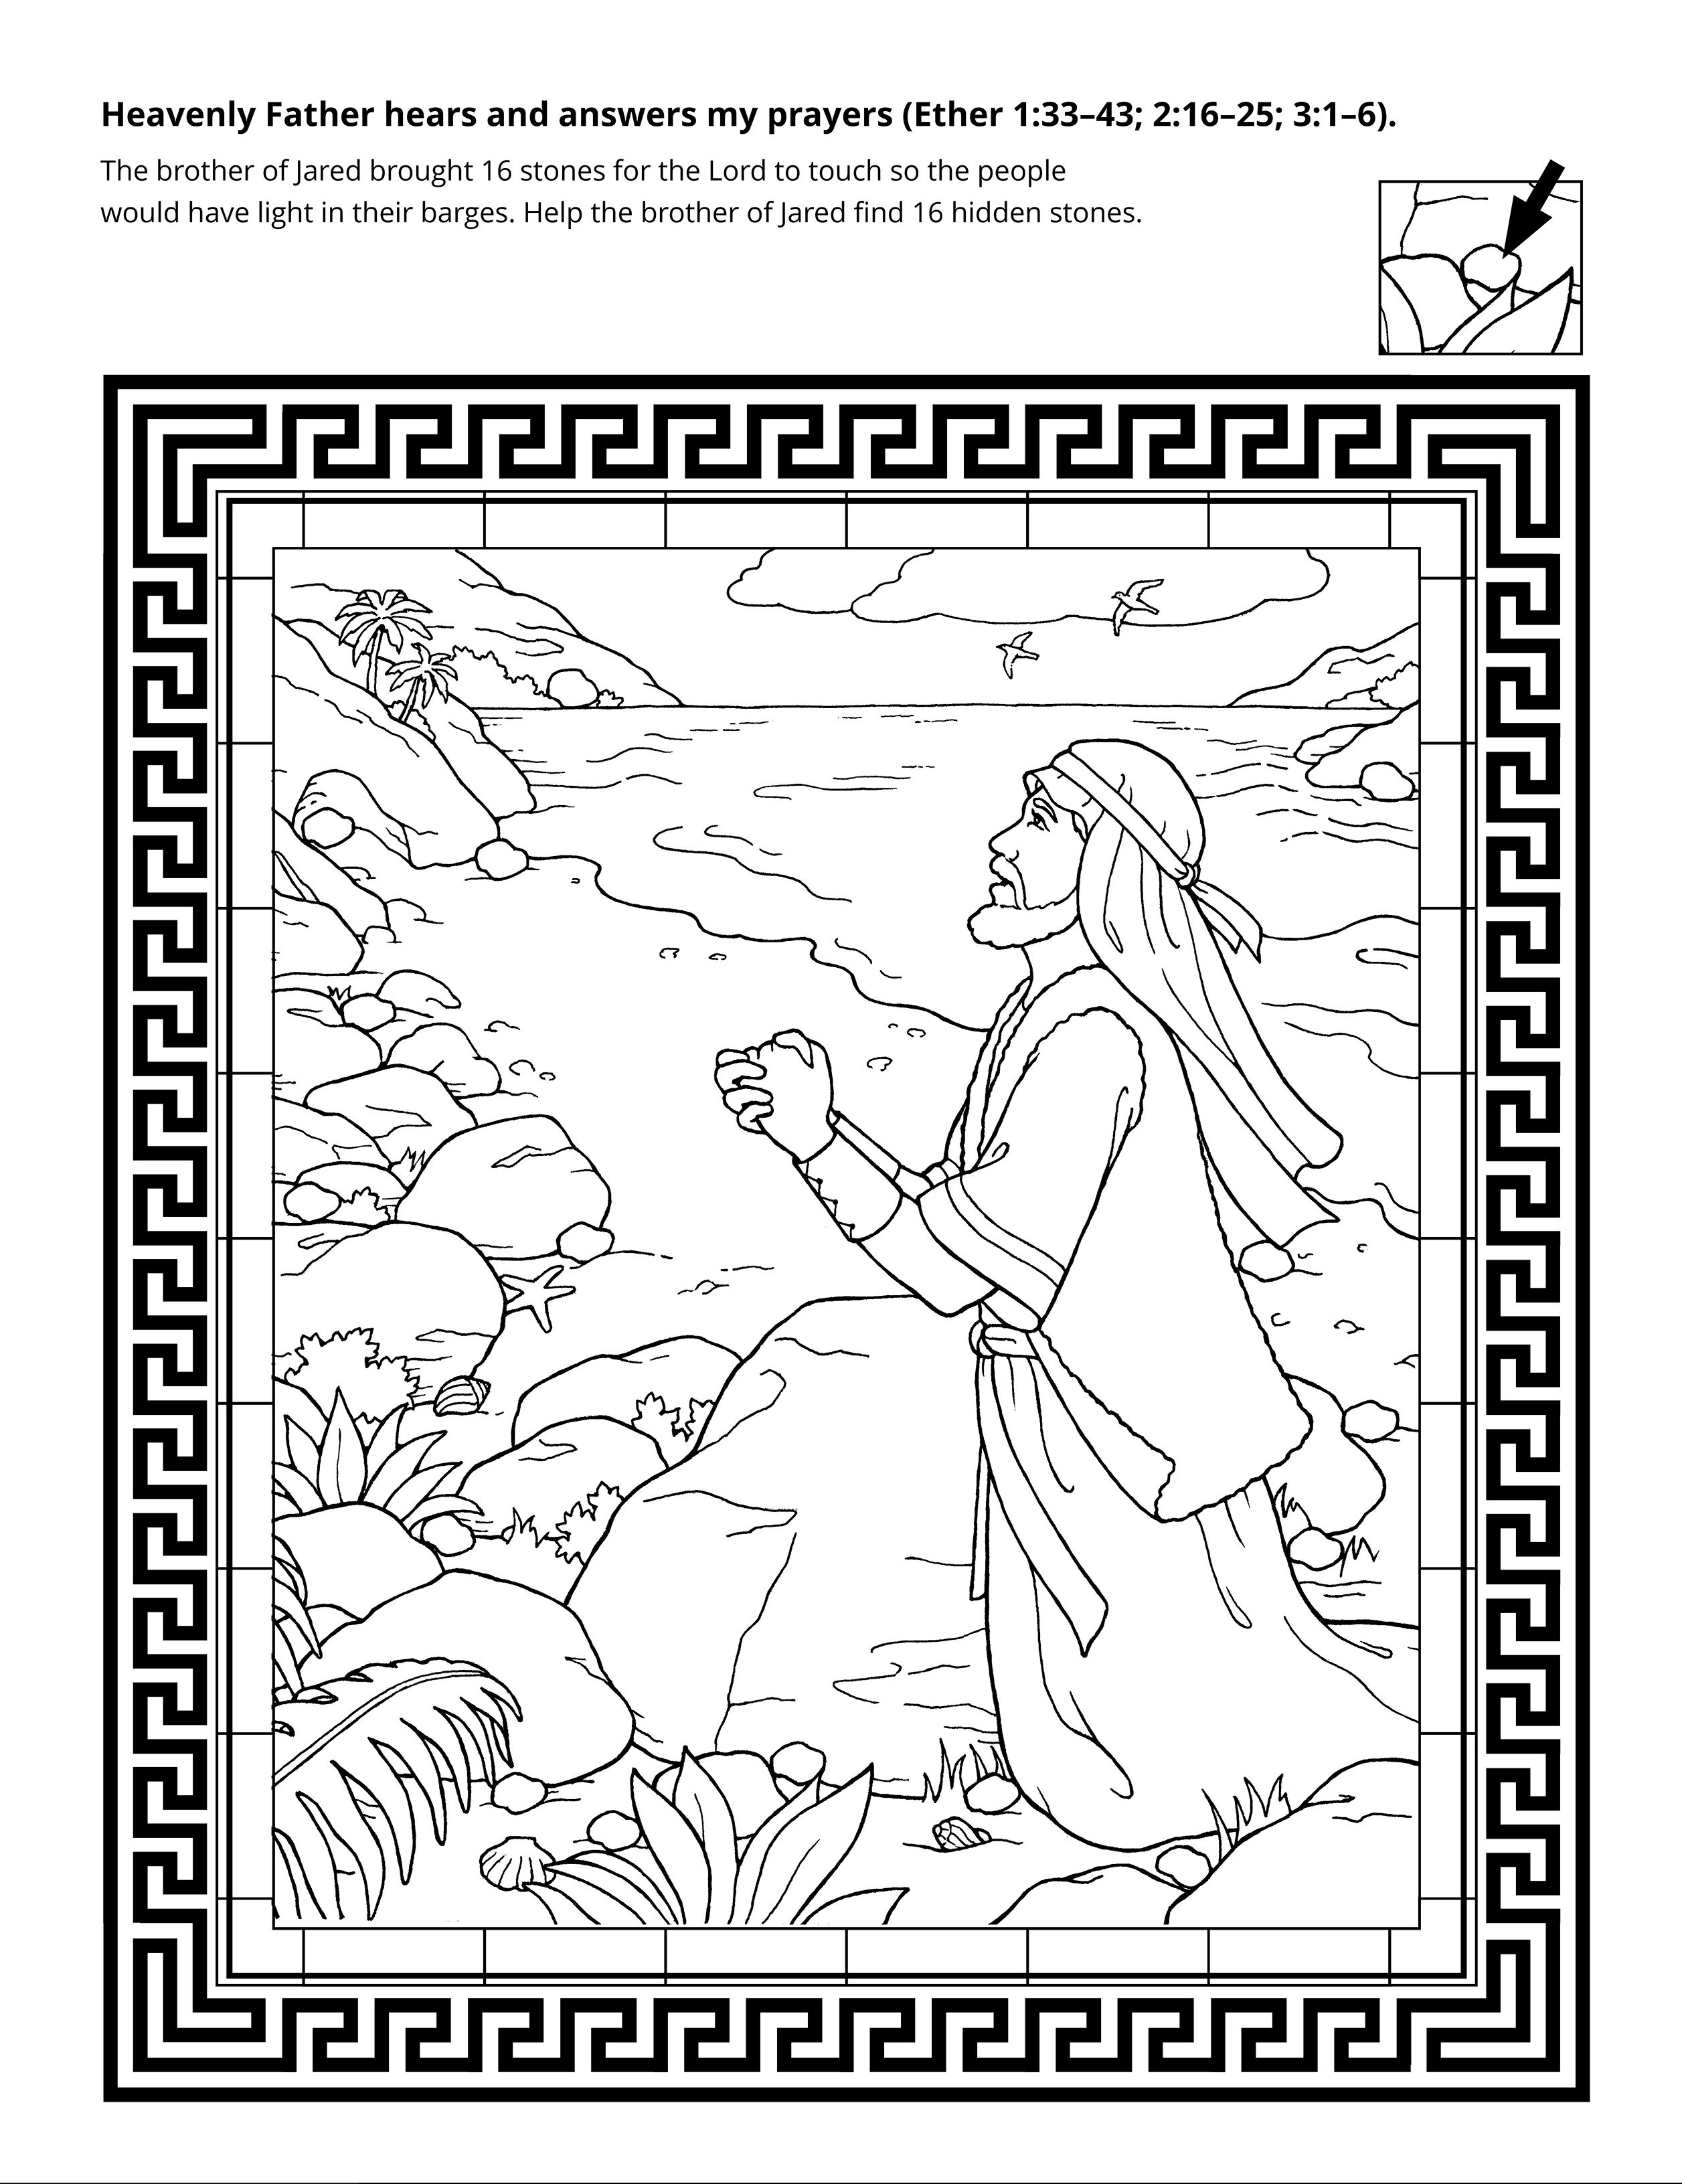 An illustration of the brother of Jared praying.